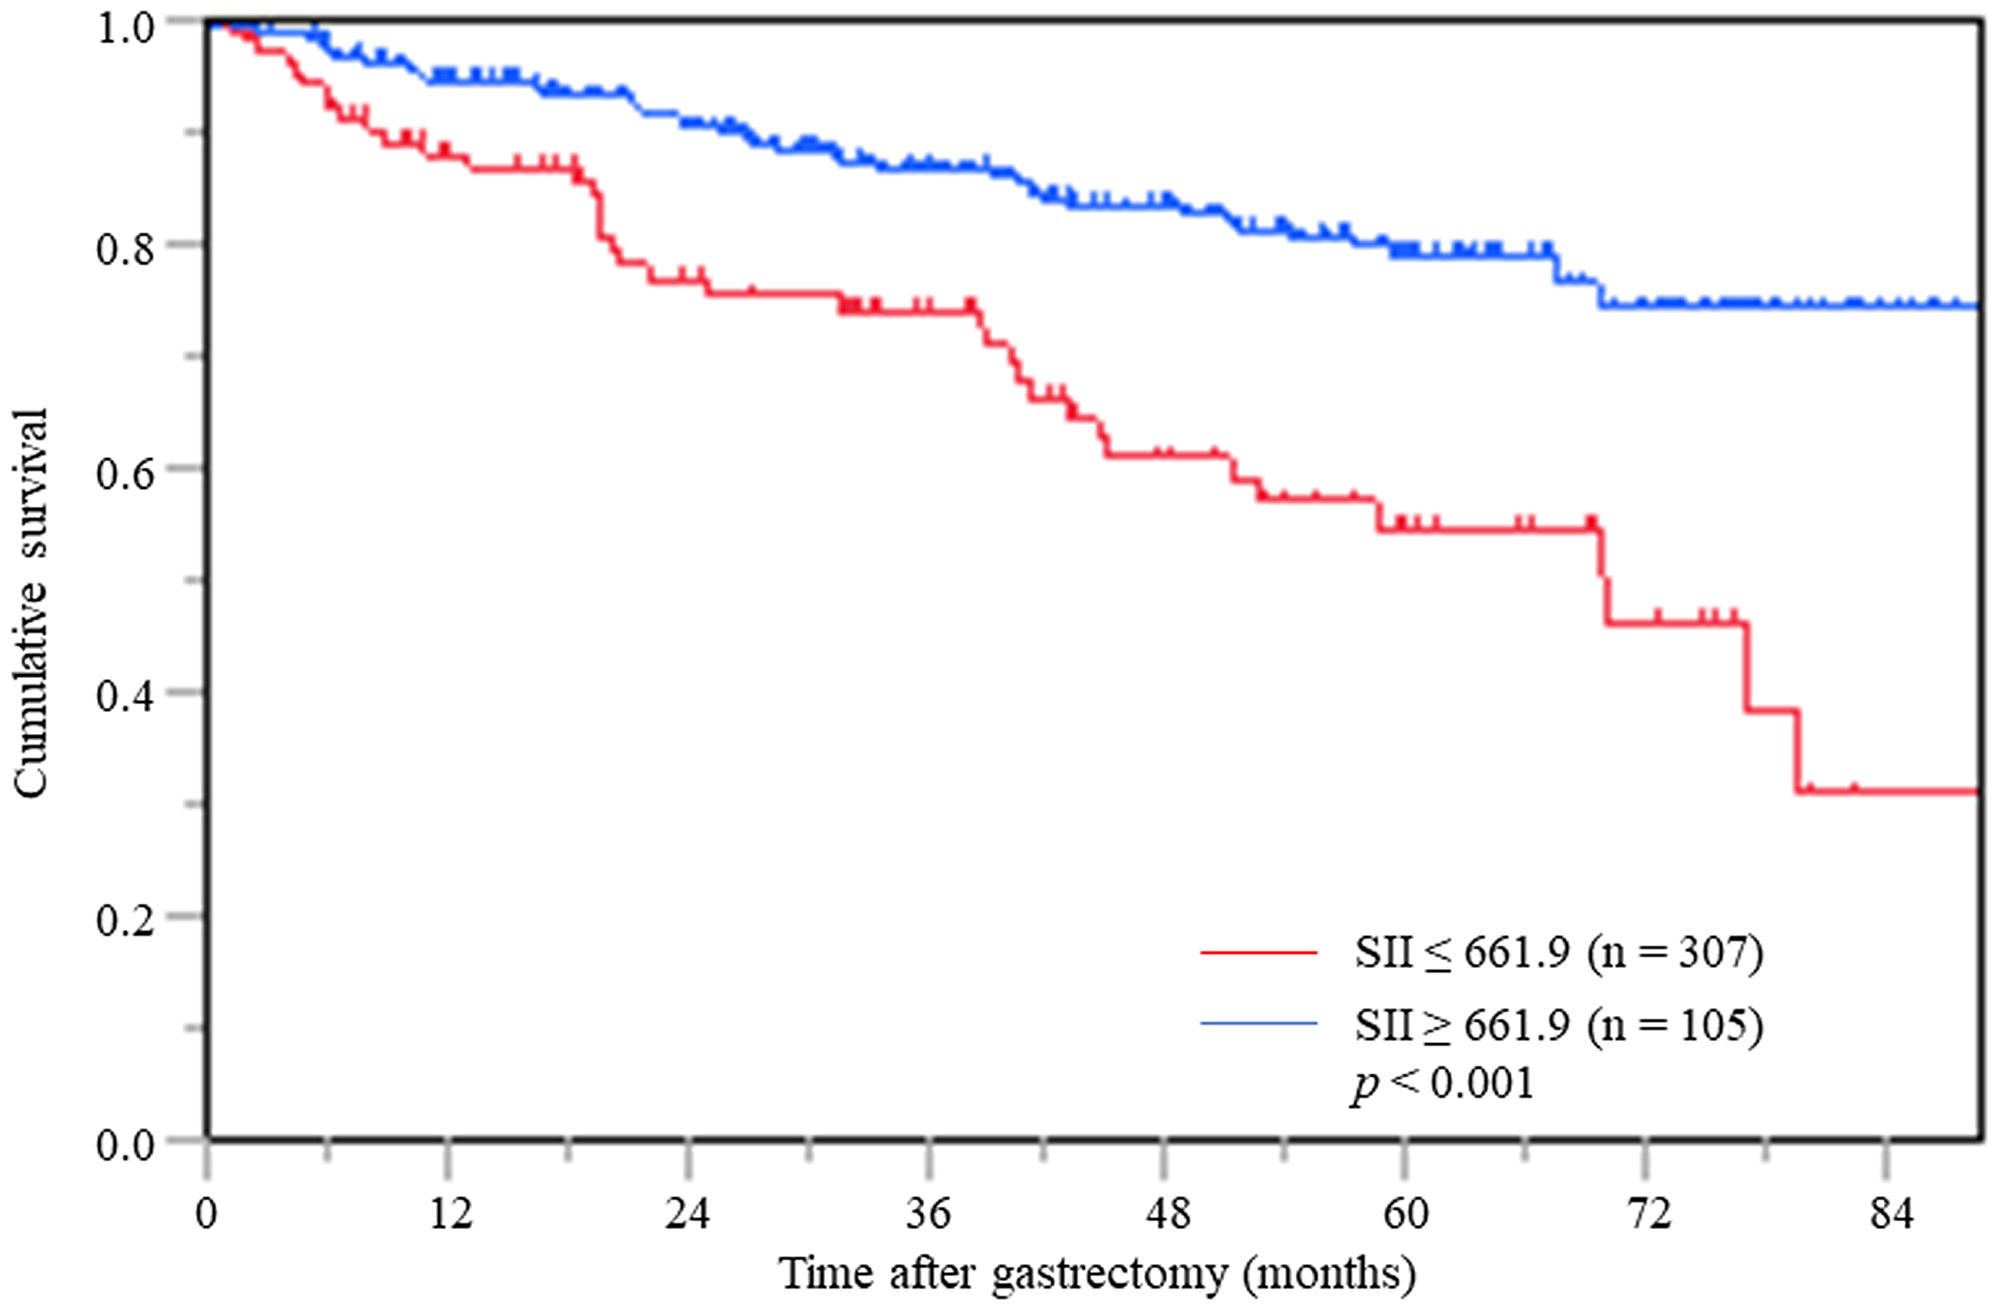 Postoperative OS based on SII in overall gastric cancer patients.